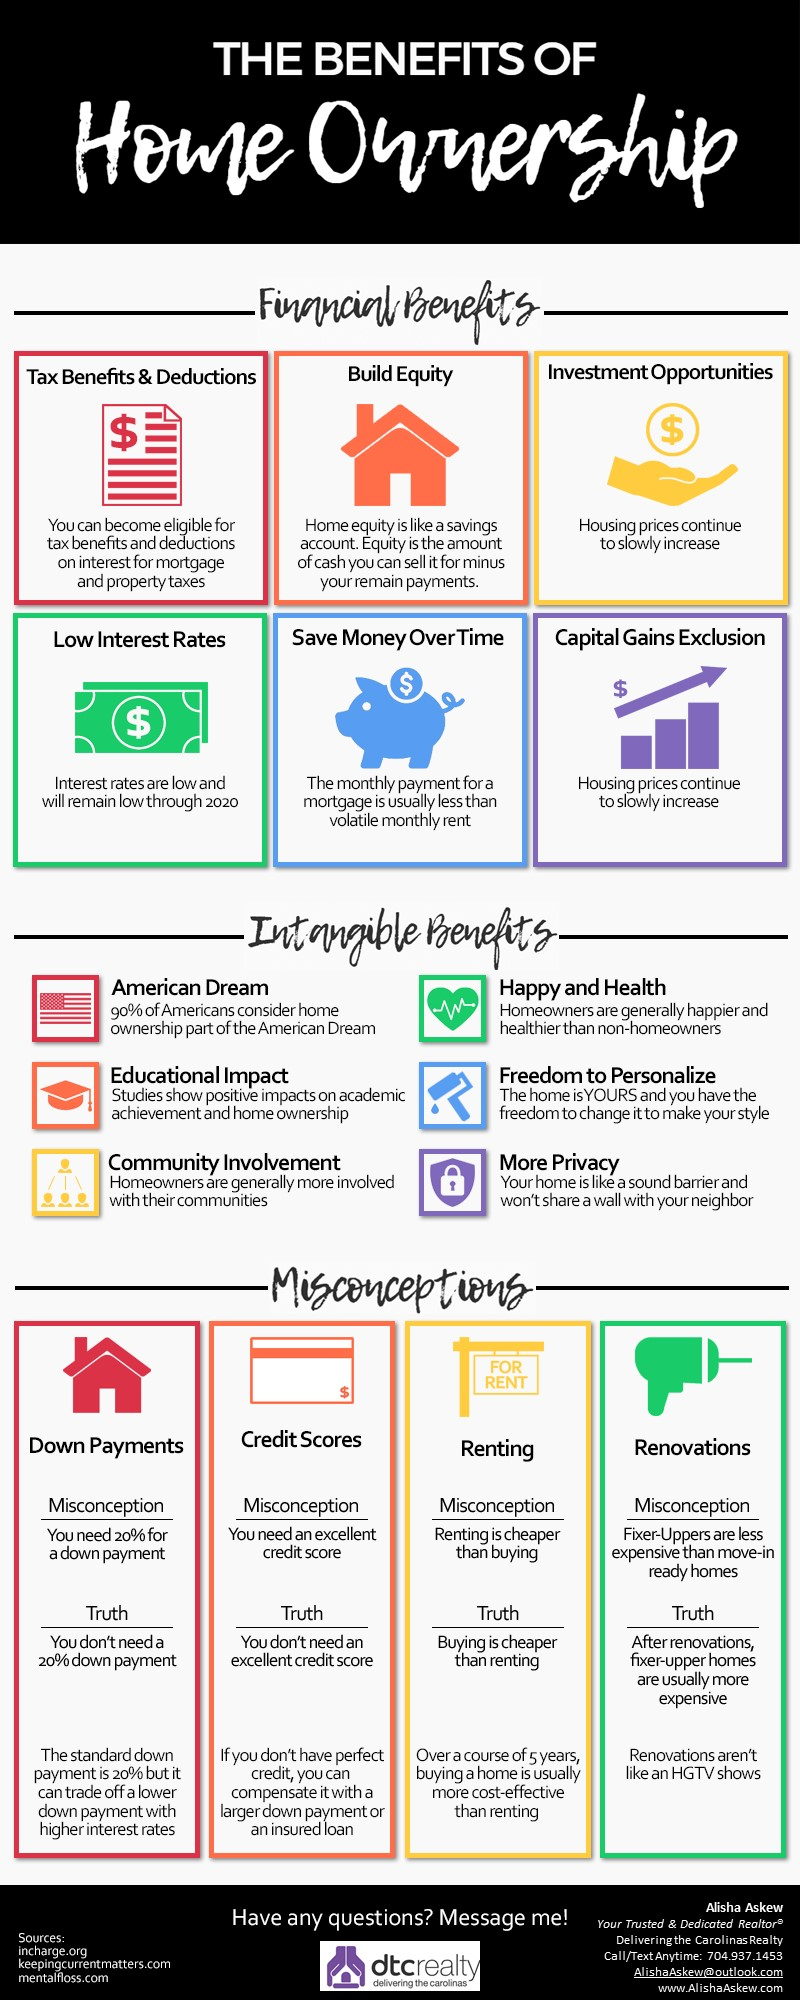 12 Irresistible Benefits of Home Ownership Infographic!